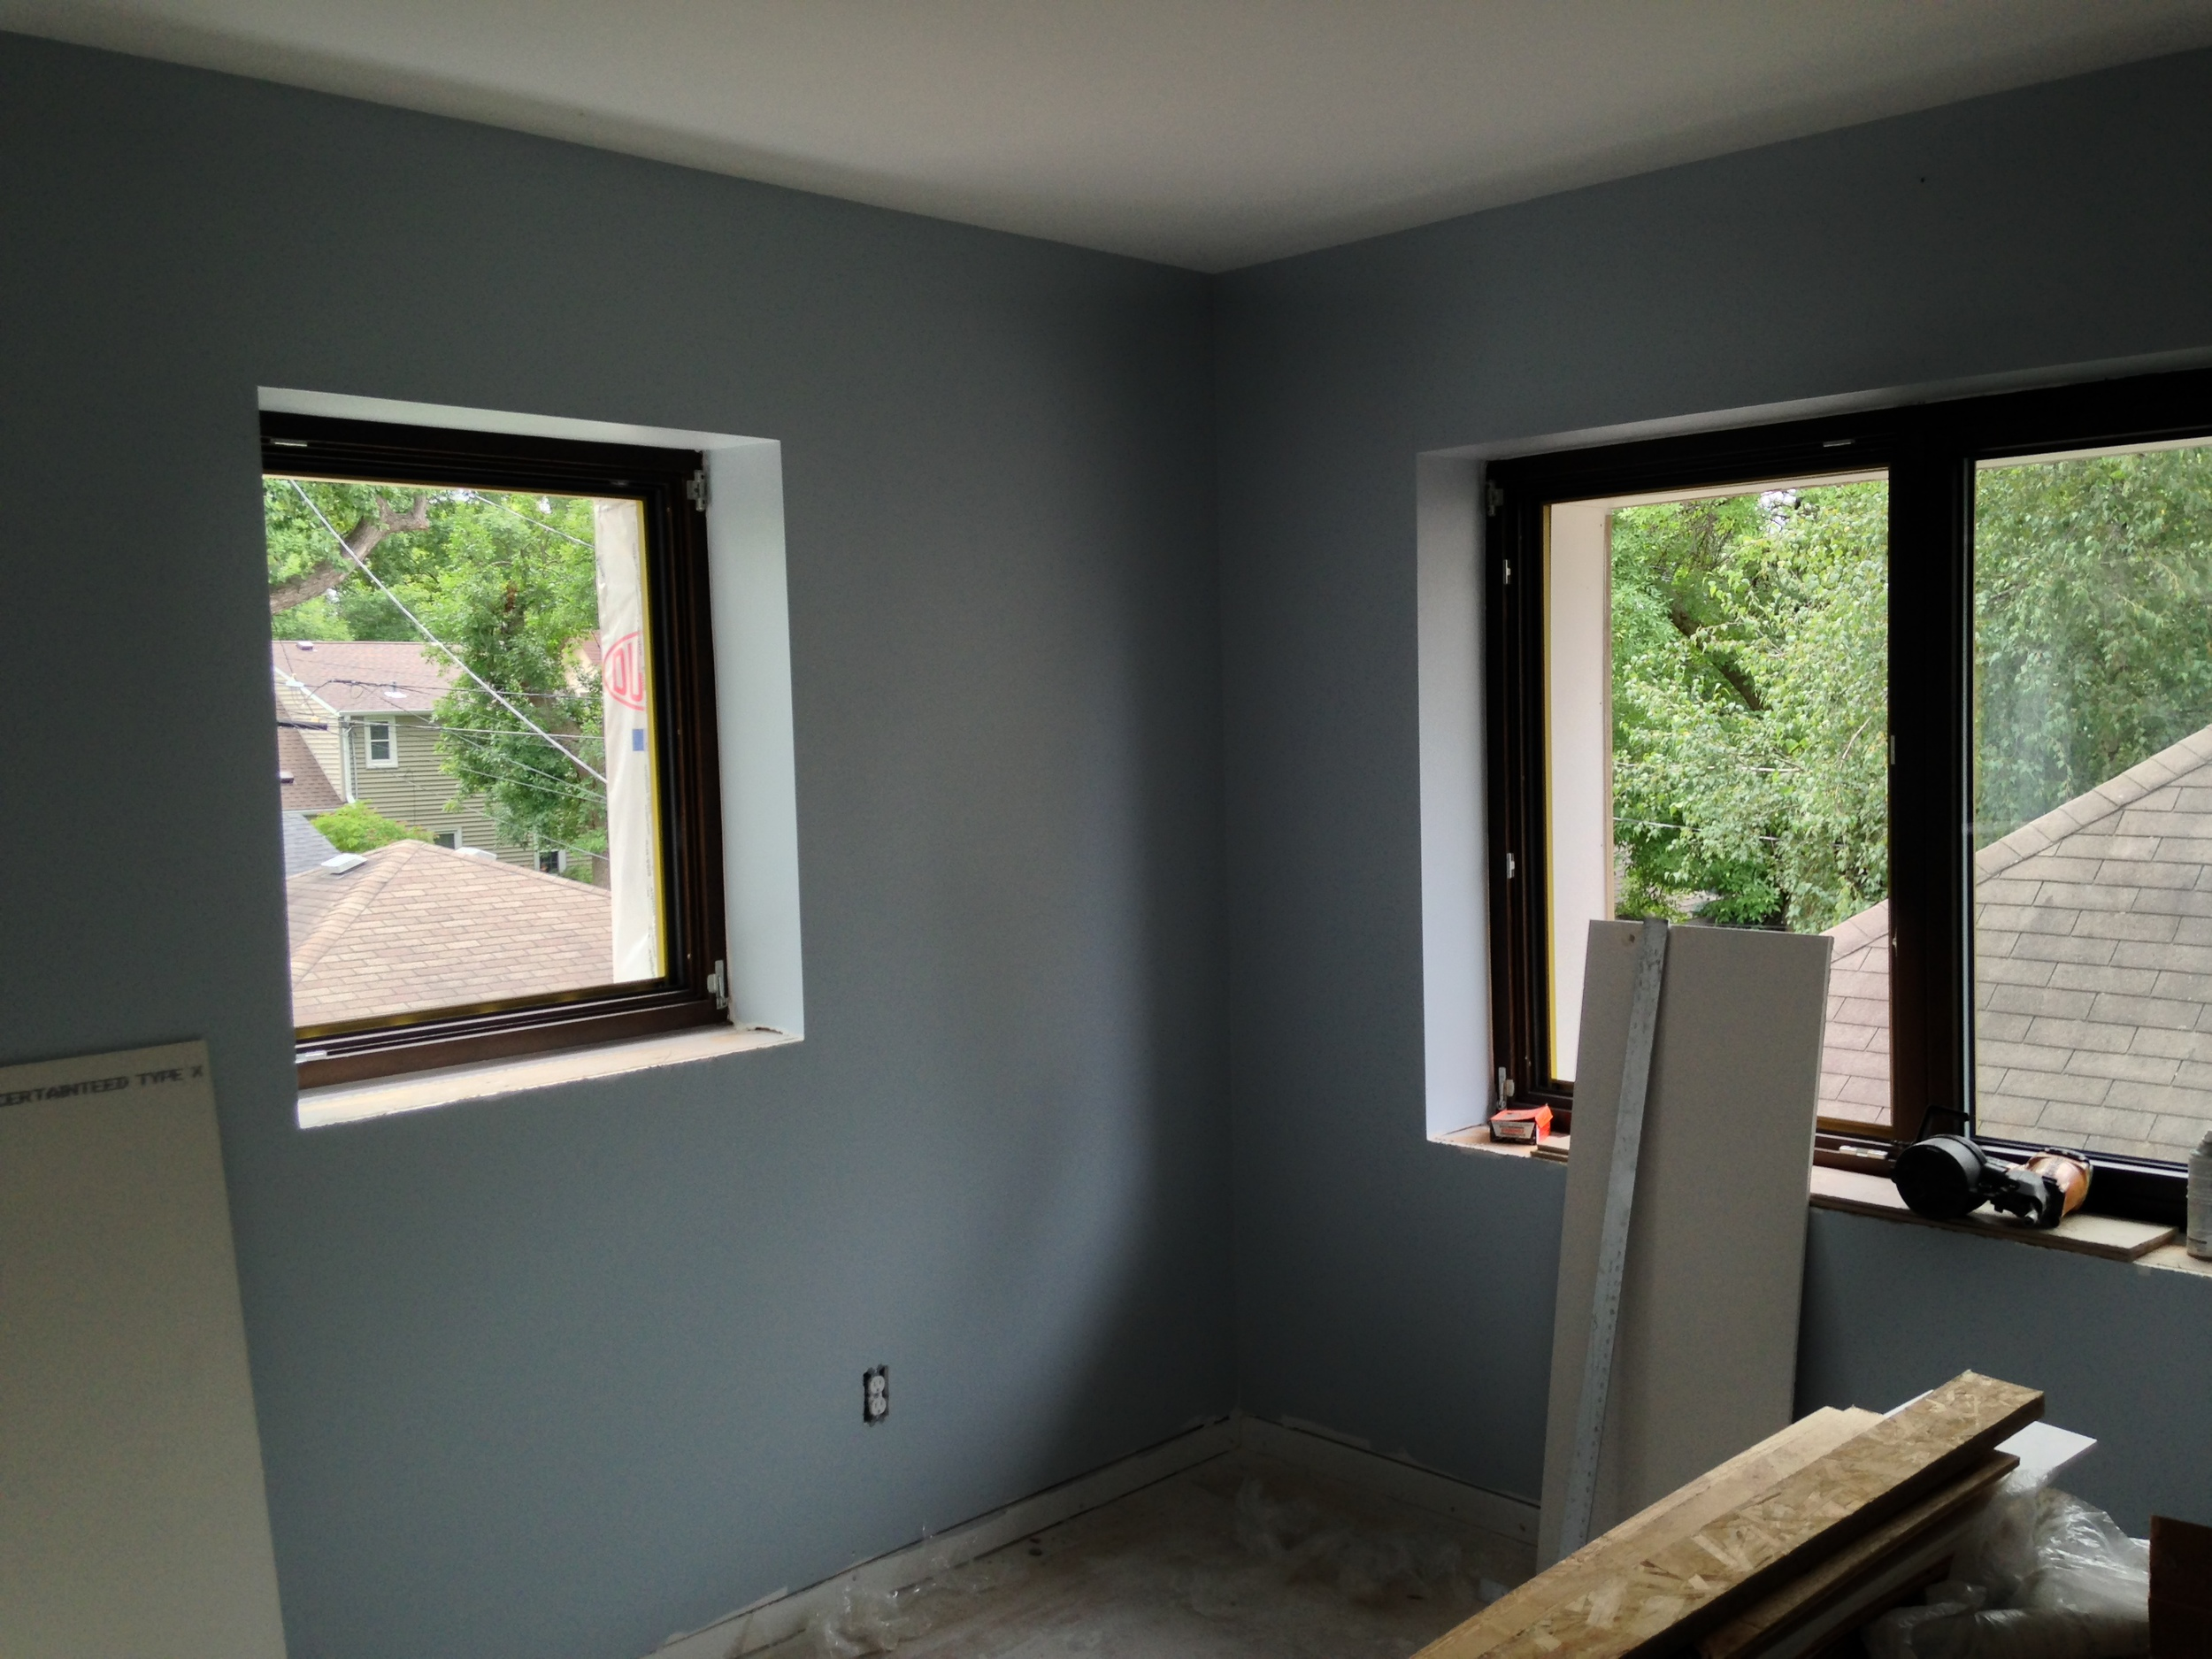 Blue/Gray in the boys' room